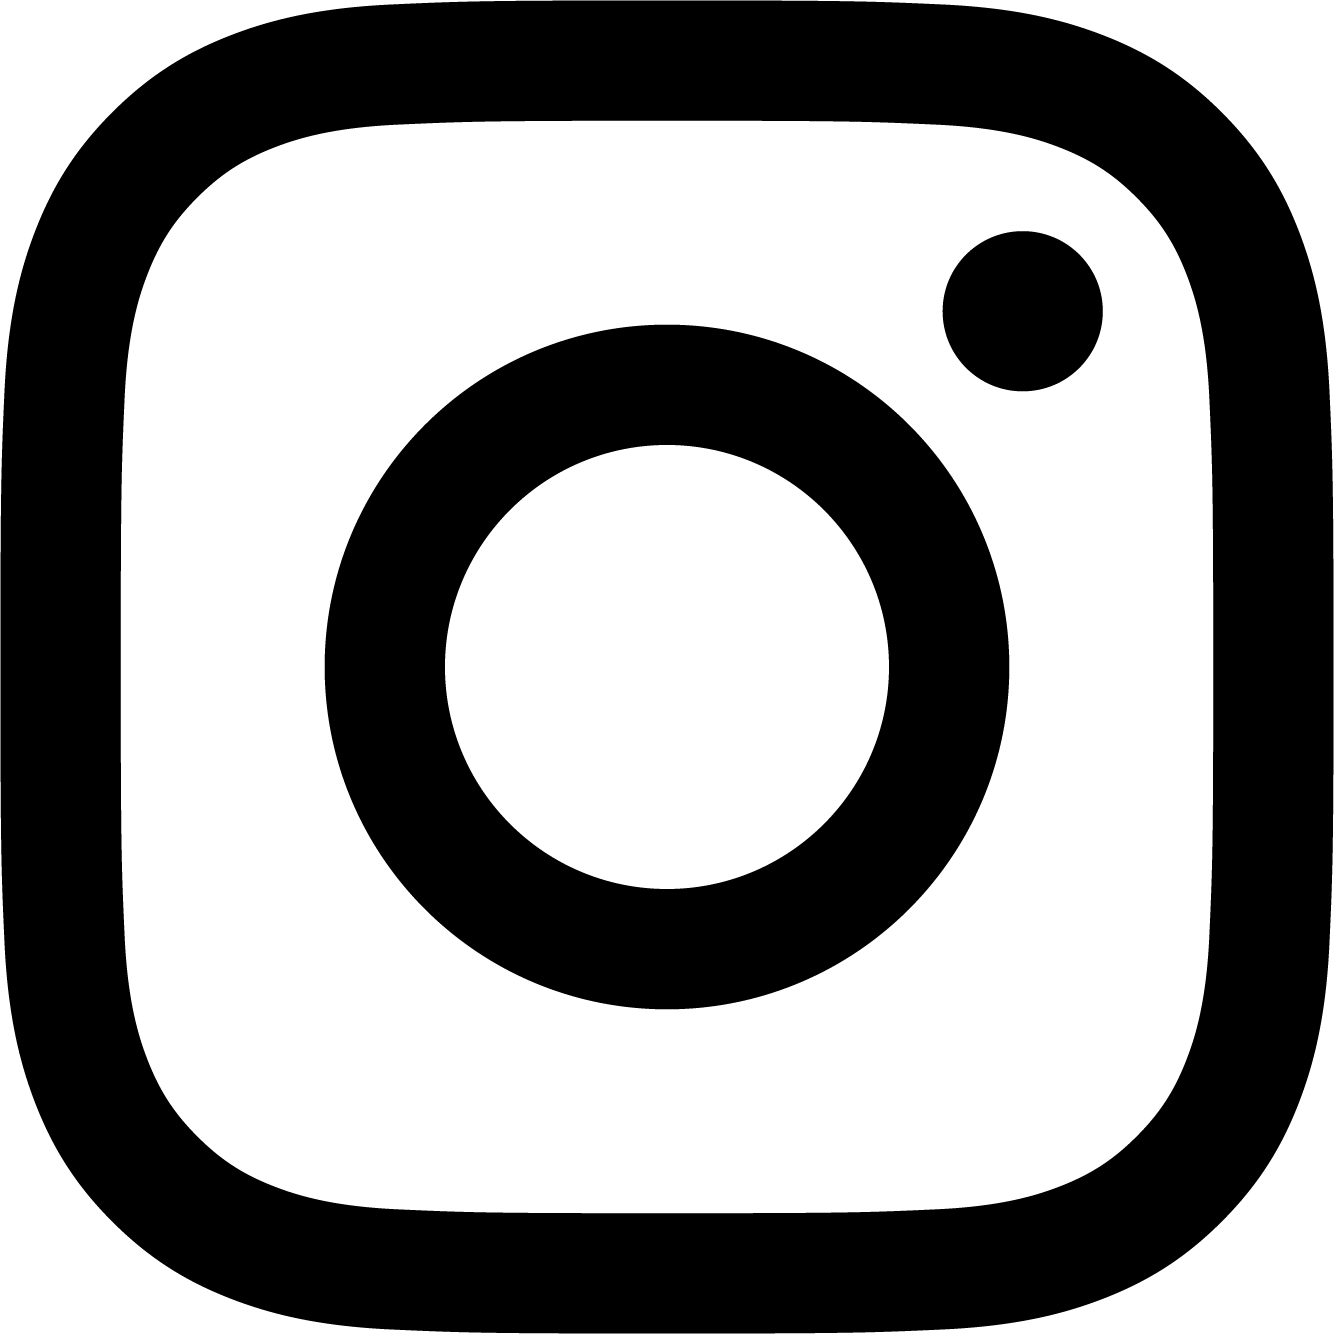 An icon of camera, to resemble Instagram's logo.